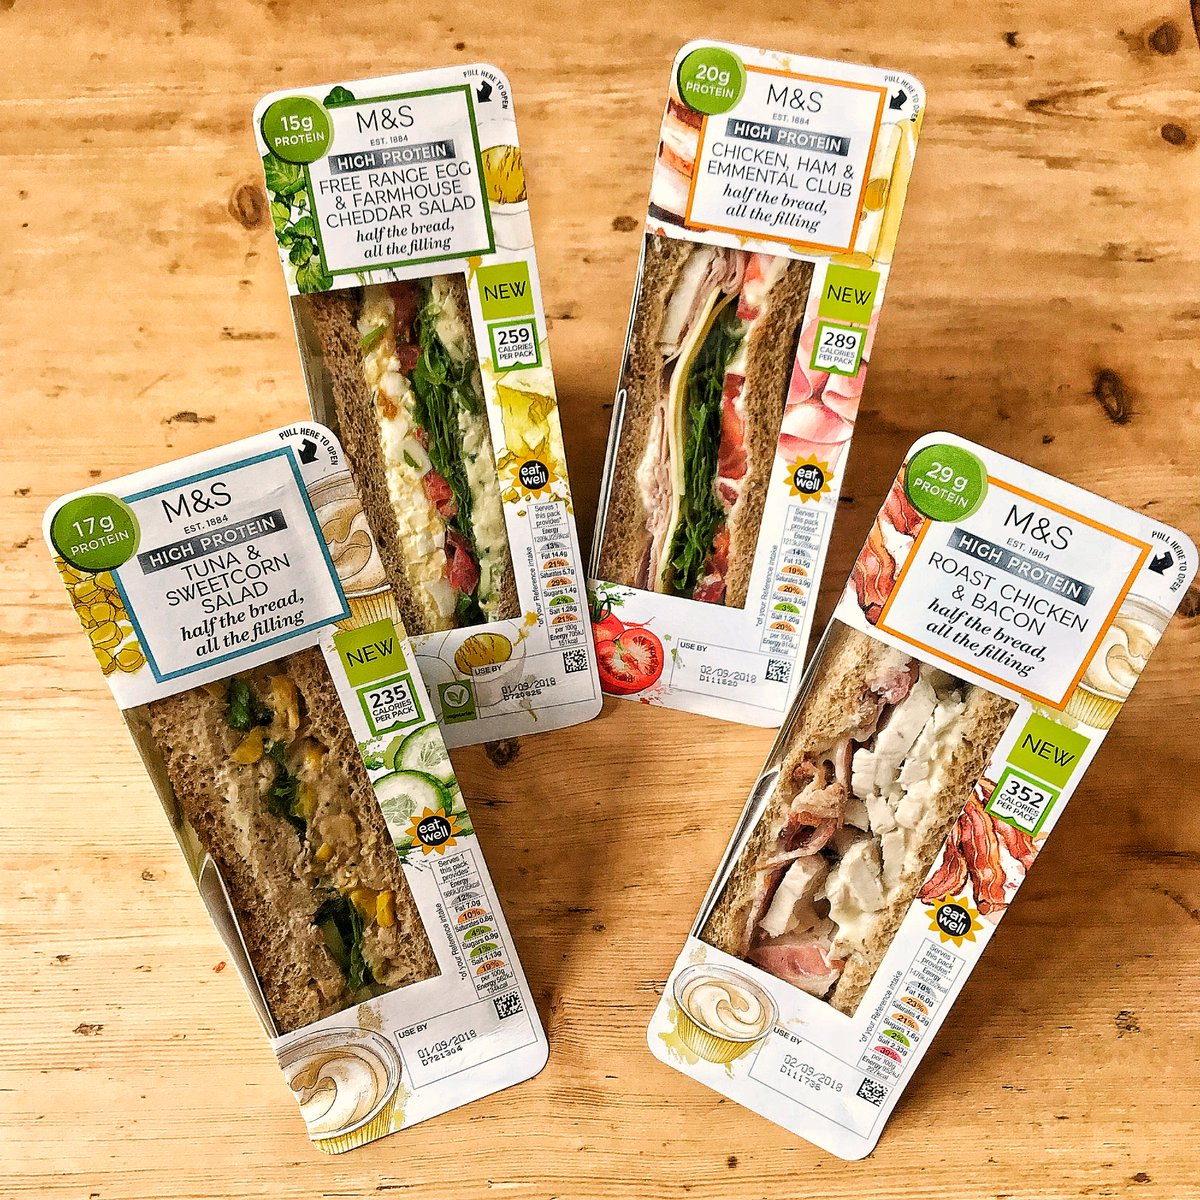 Ms On Twitter Our New Healthy High Protein Sandwiches Are